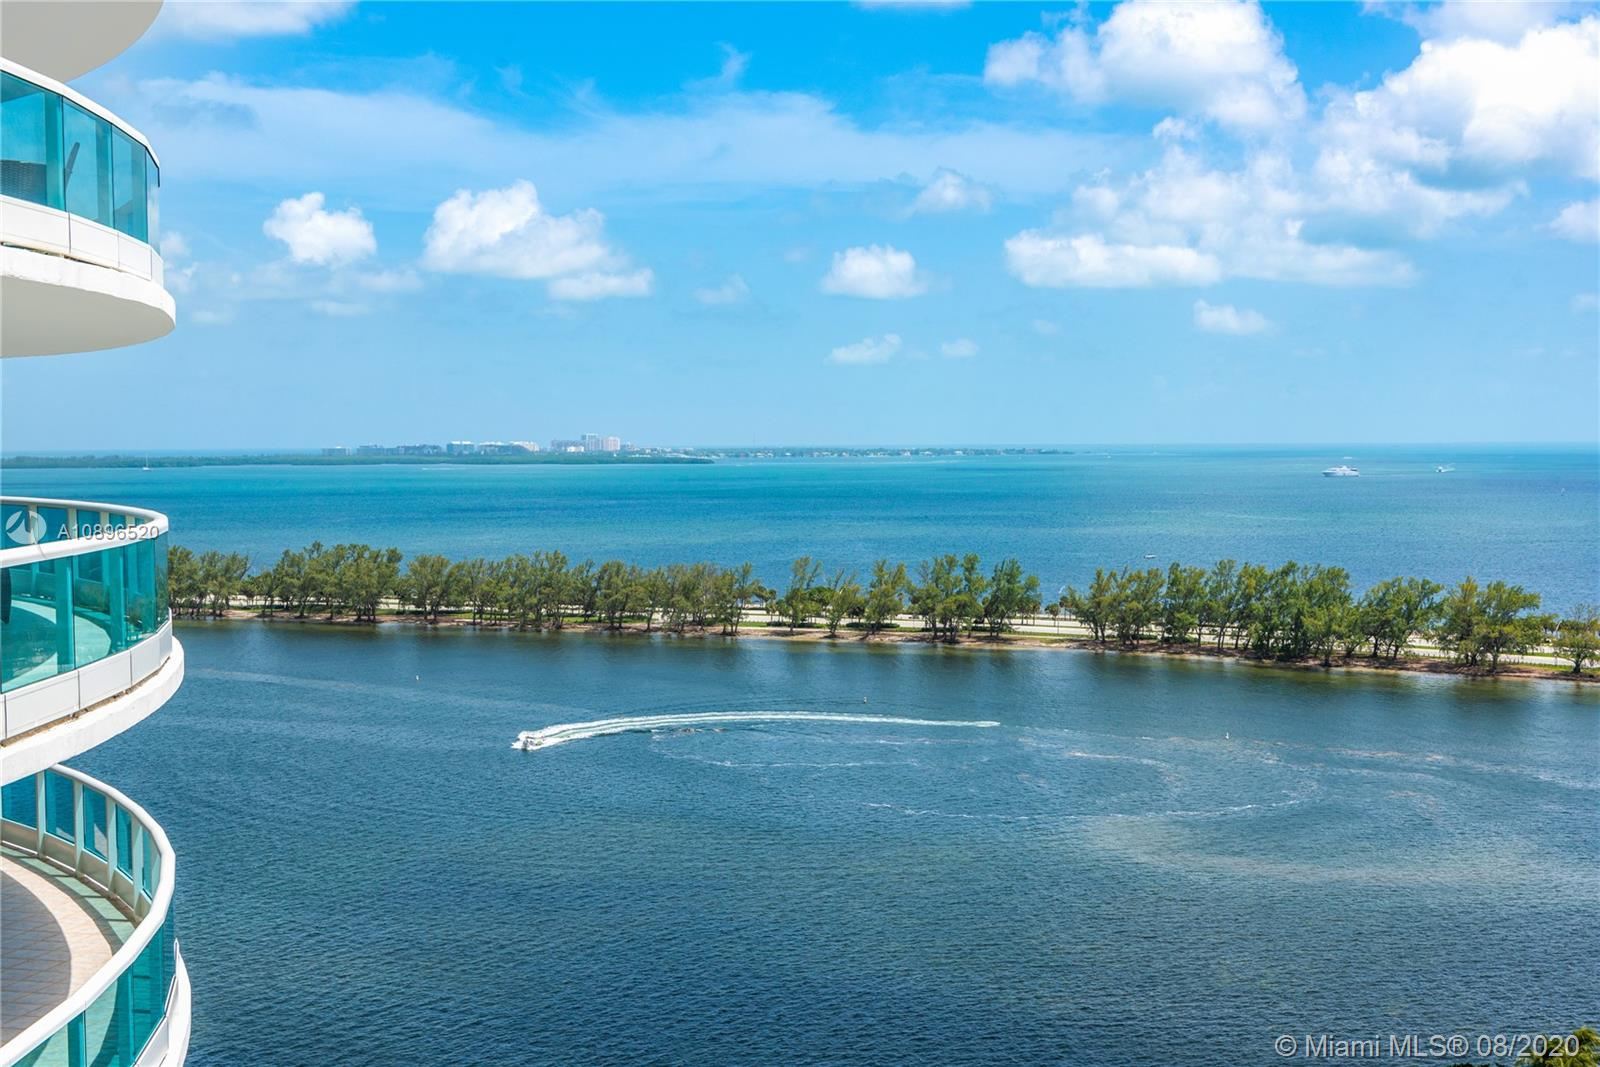 Step inside this upgraded bay front gem located in Bristol Tower. Offering 2,800 sq ft of prime luxury waterfront  Brickell lifestyle. Completely remodeled in 2019, this home features 3 large bedrooms, 2 en suite, separate laundry room, bright living area perfect for entertaining. The modern kitchen includes granite countertops, Miele, Wolf appliances. All rooms are brightly lit by natural lighting and have access to  balconies providing an airy lifestyle. Enjoy the sunsets setting over the Brickell skyline from your grand wraparound and extended balcony. Magnificent Views of KB Bay, Coral Gables and Dowtown Brickell.